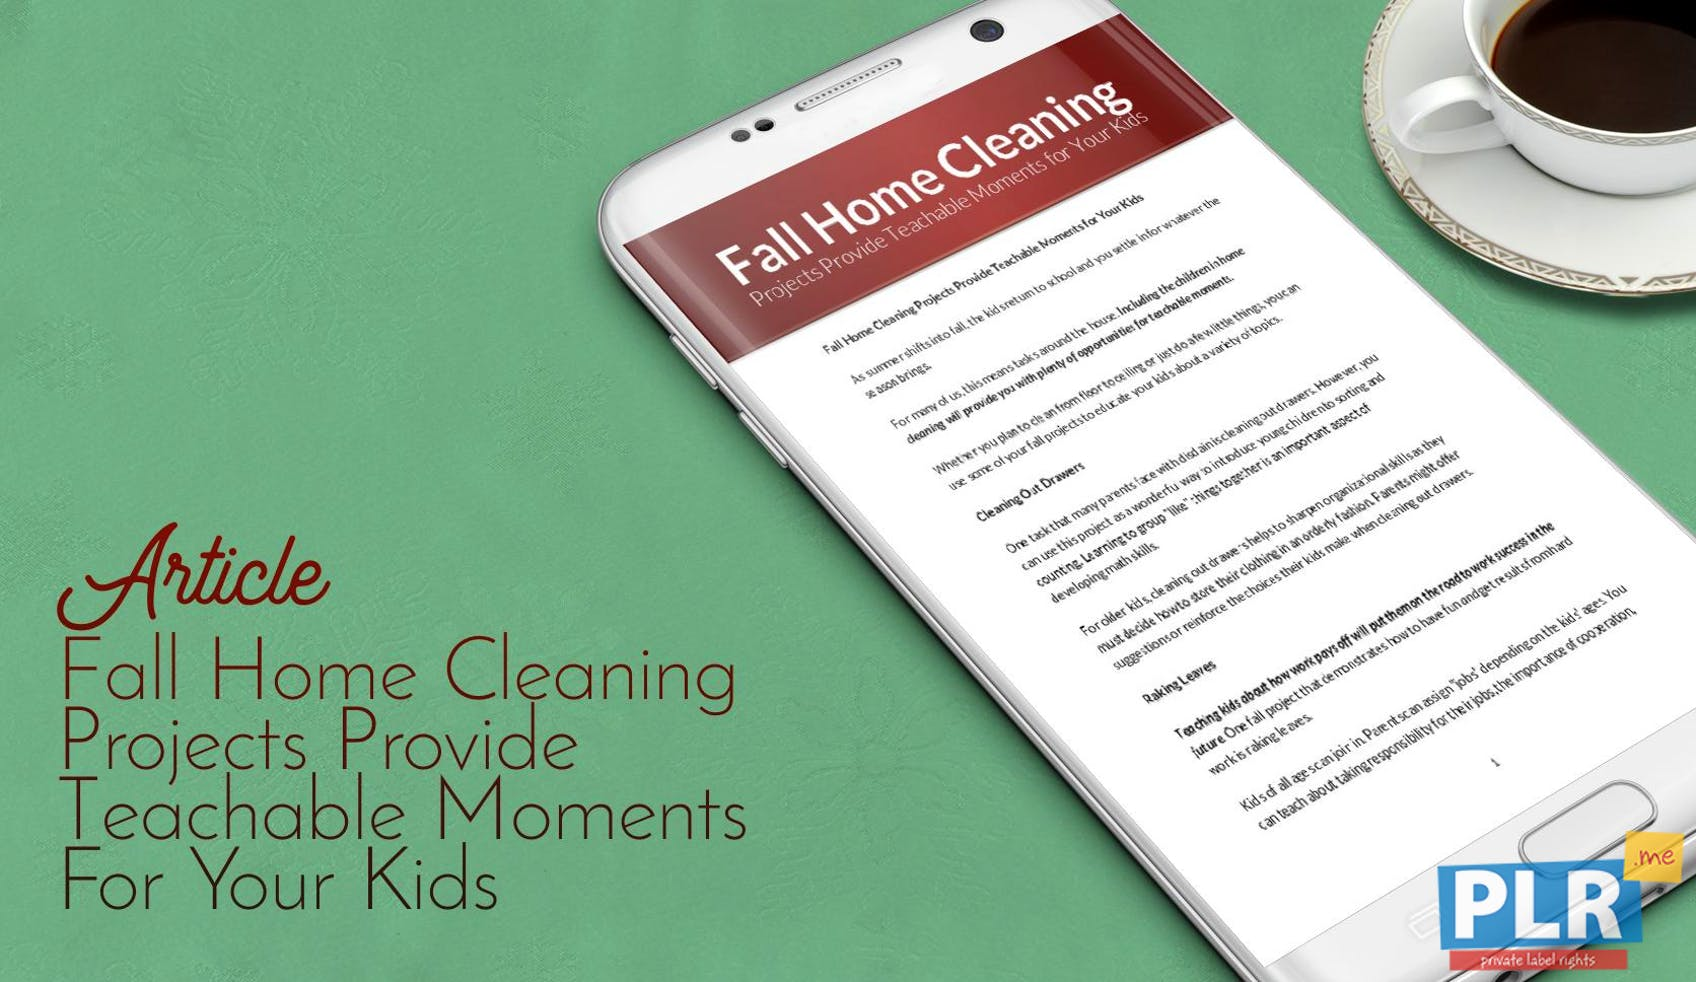 Fall Home Cleaning Projects Provide Teachable Moments For Your Kids